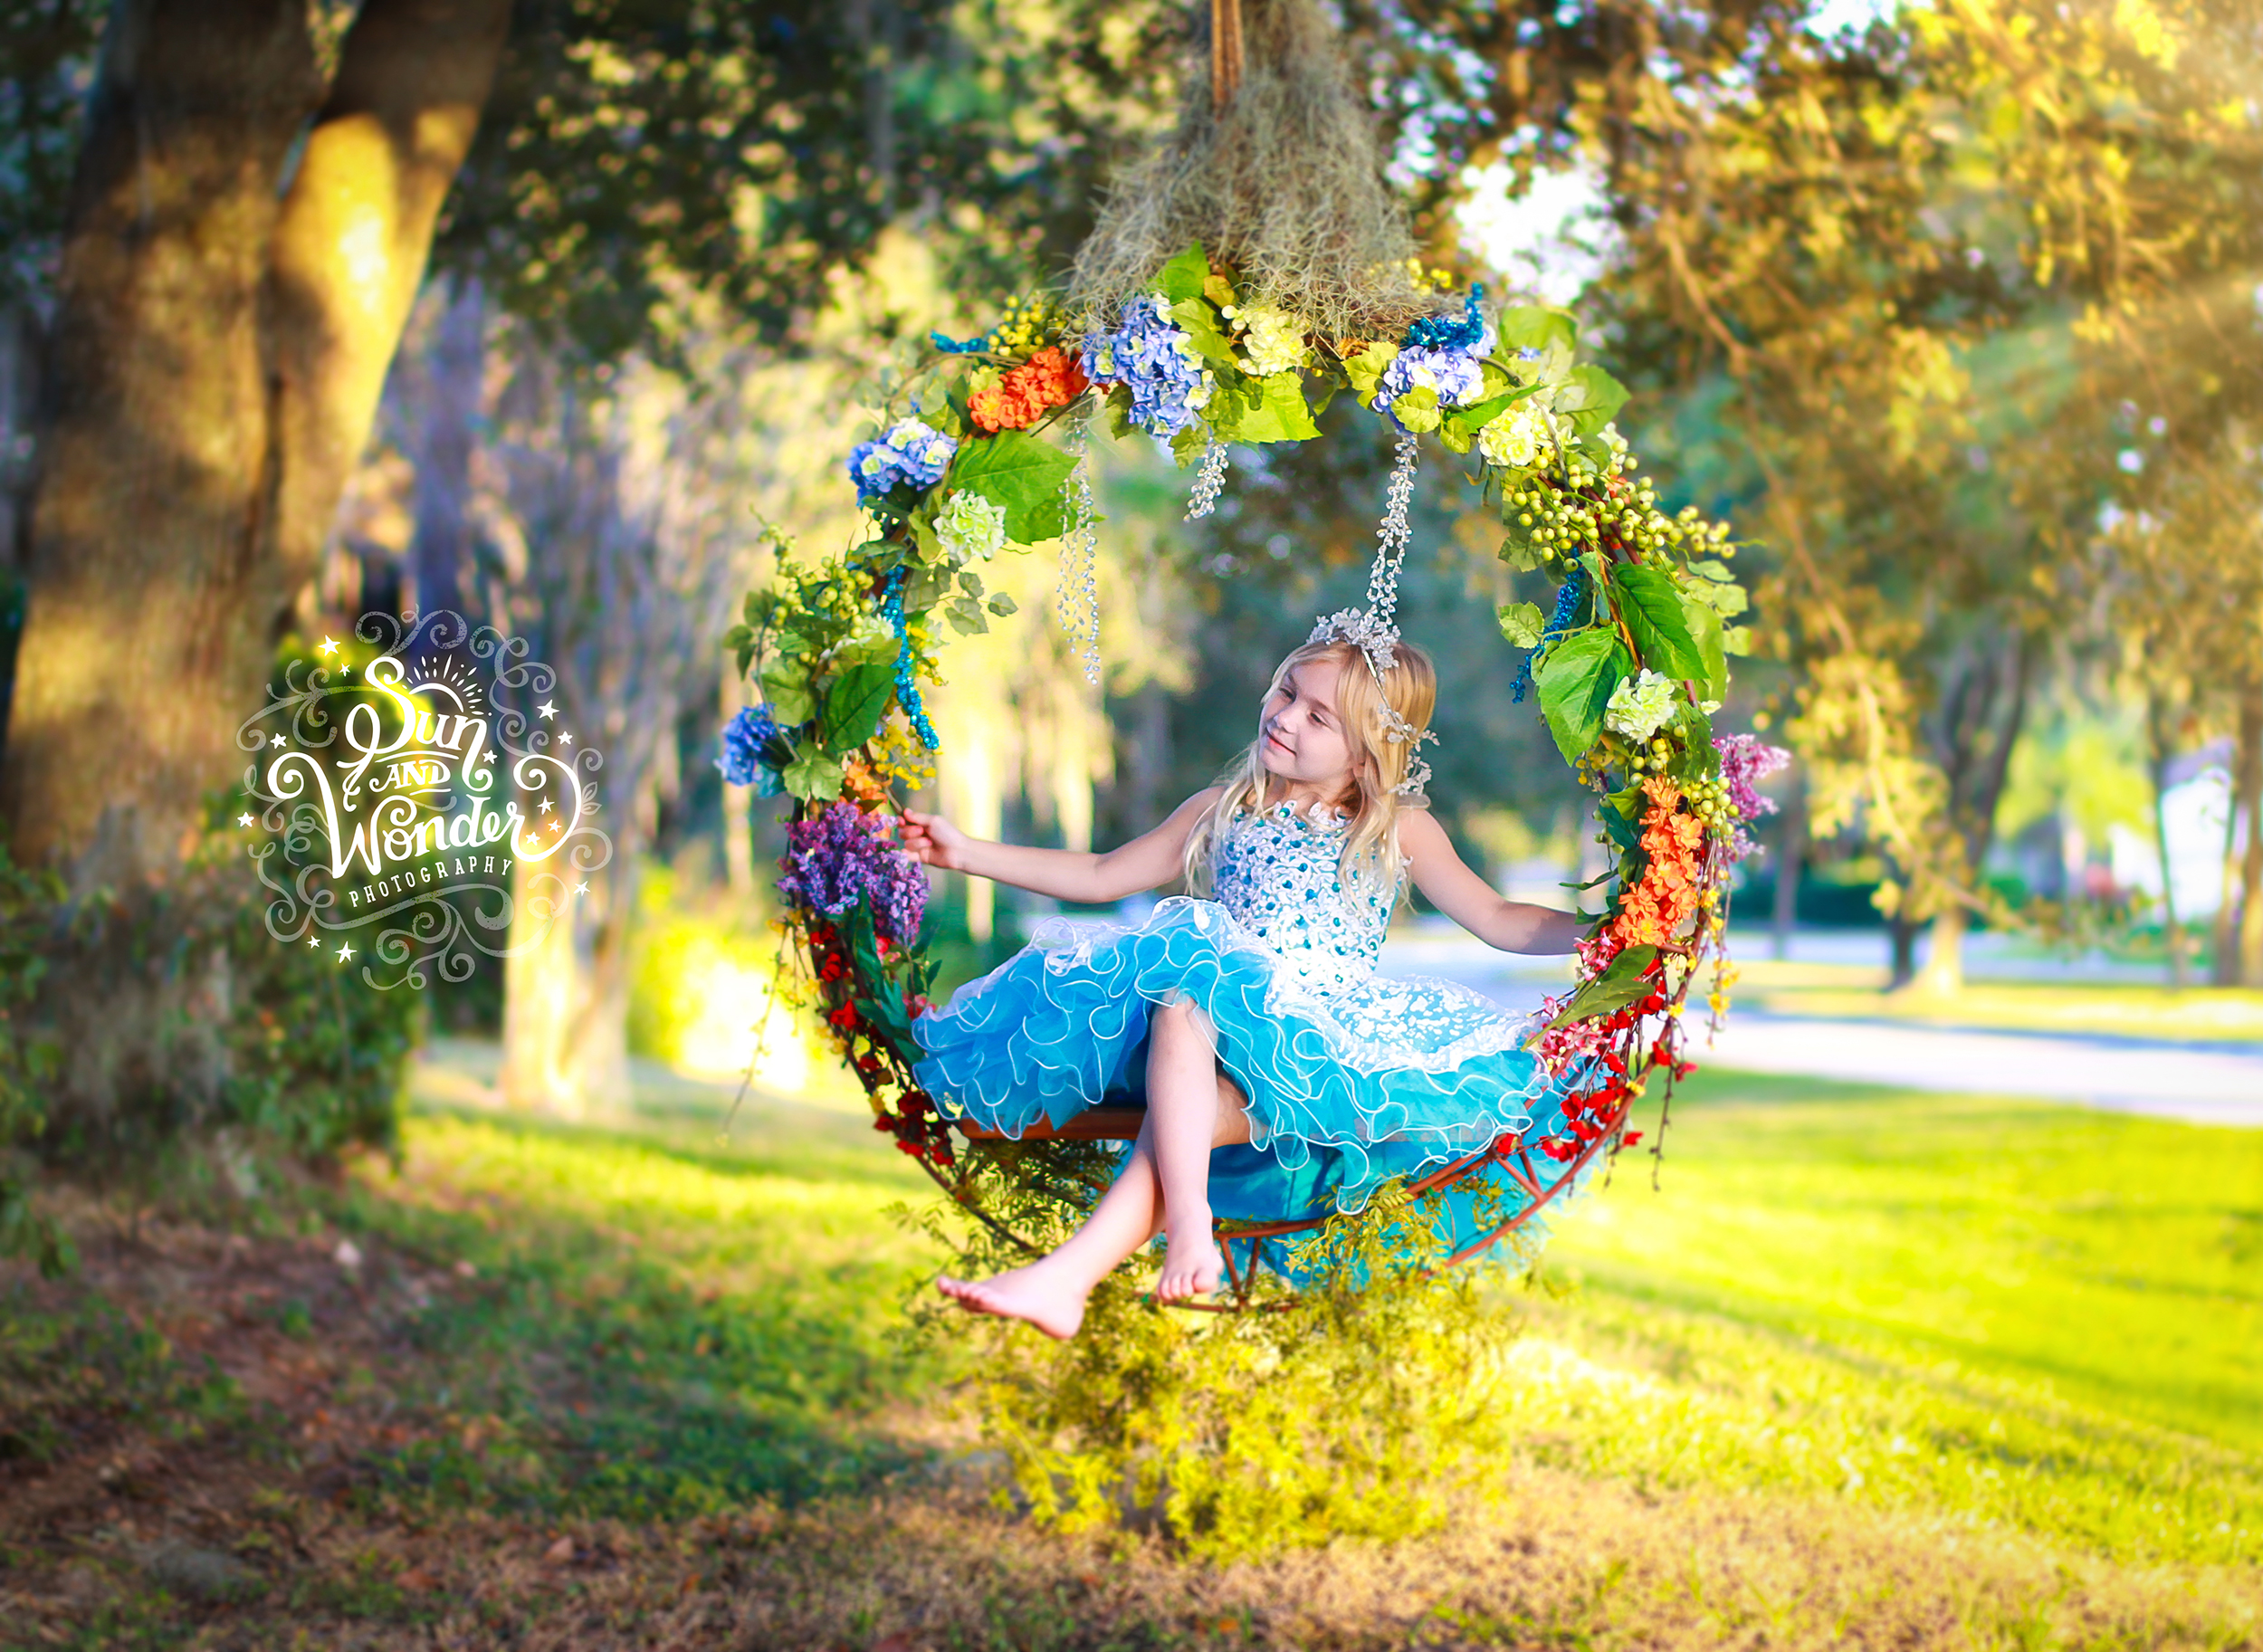 Sun and Wonder - Flower Swing Sessions